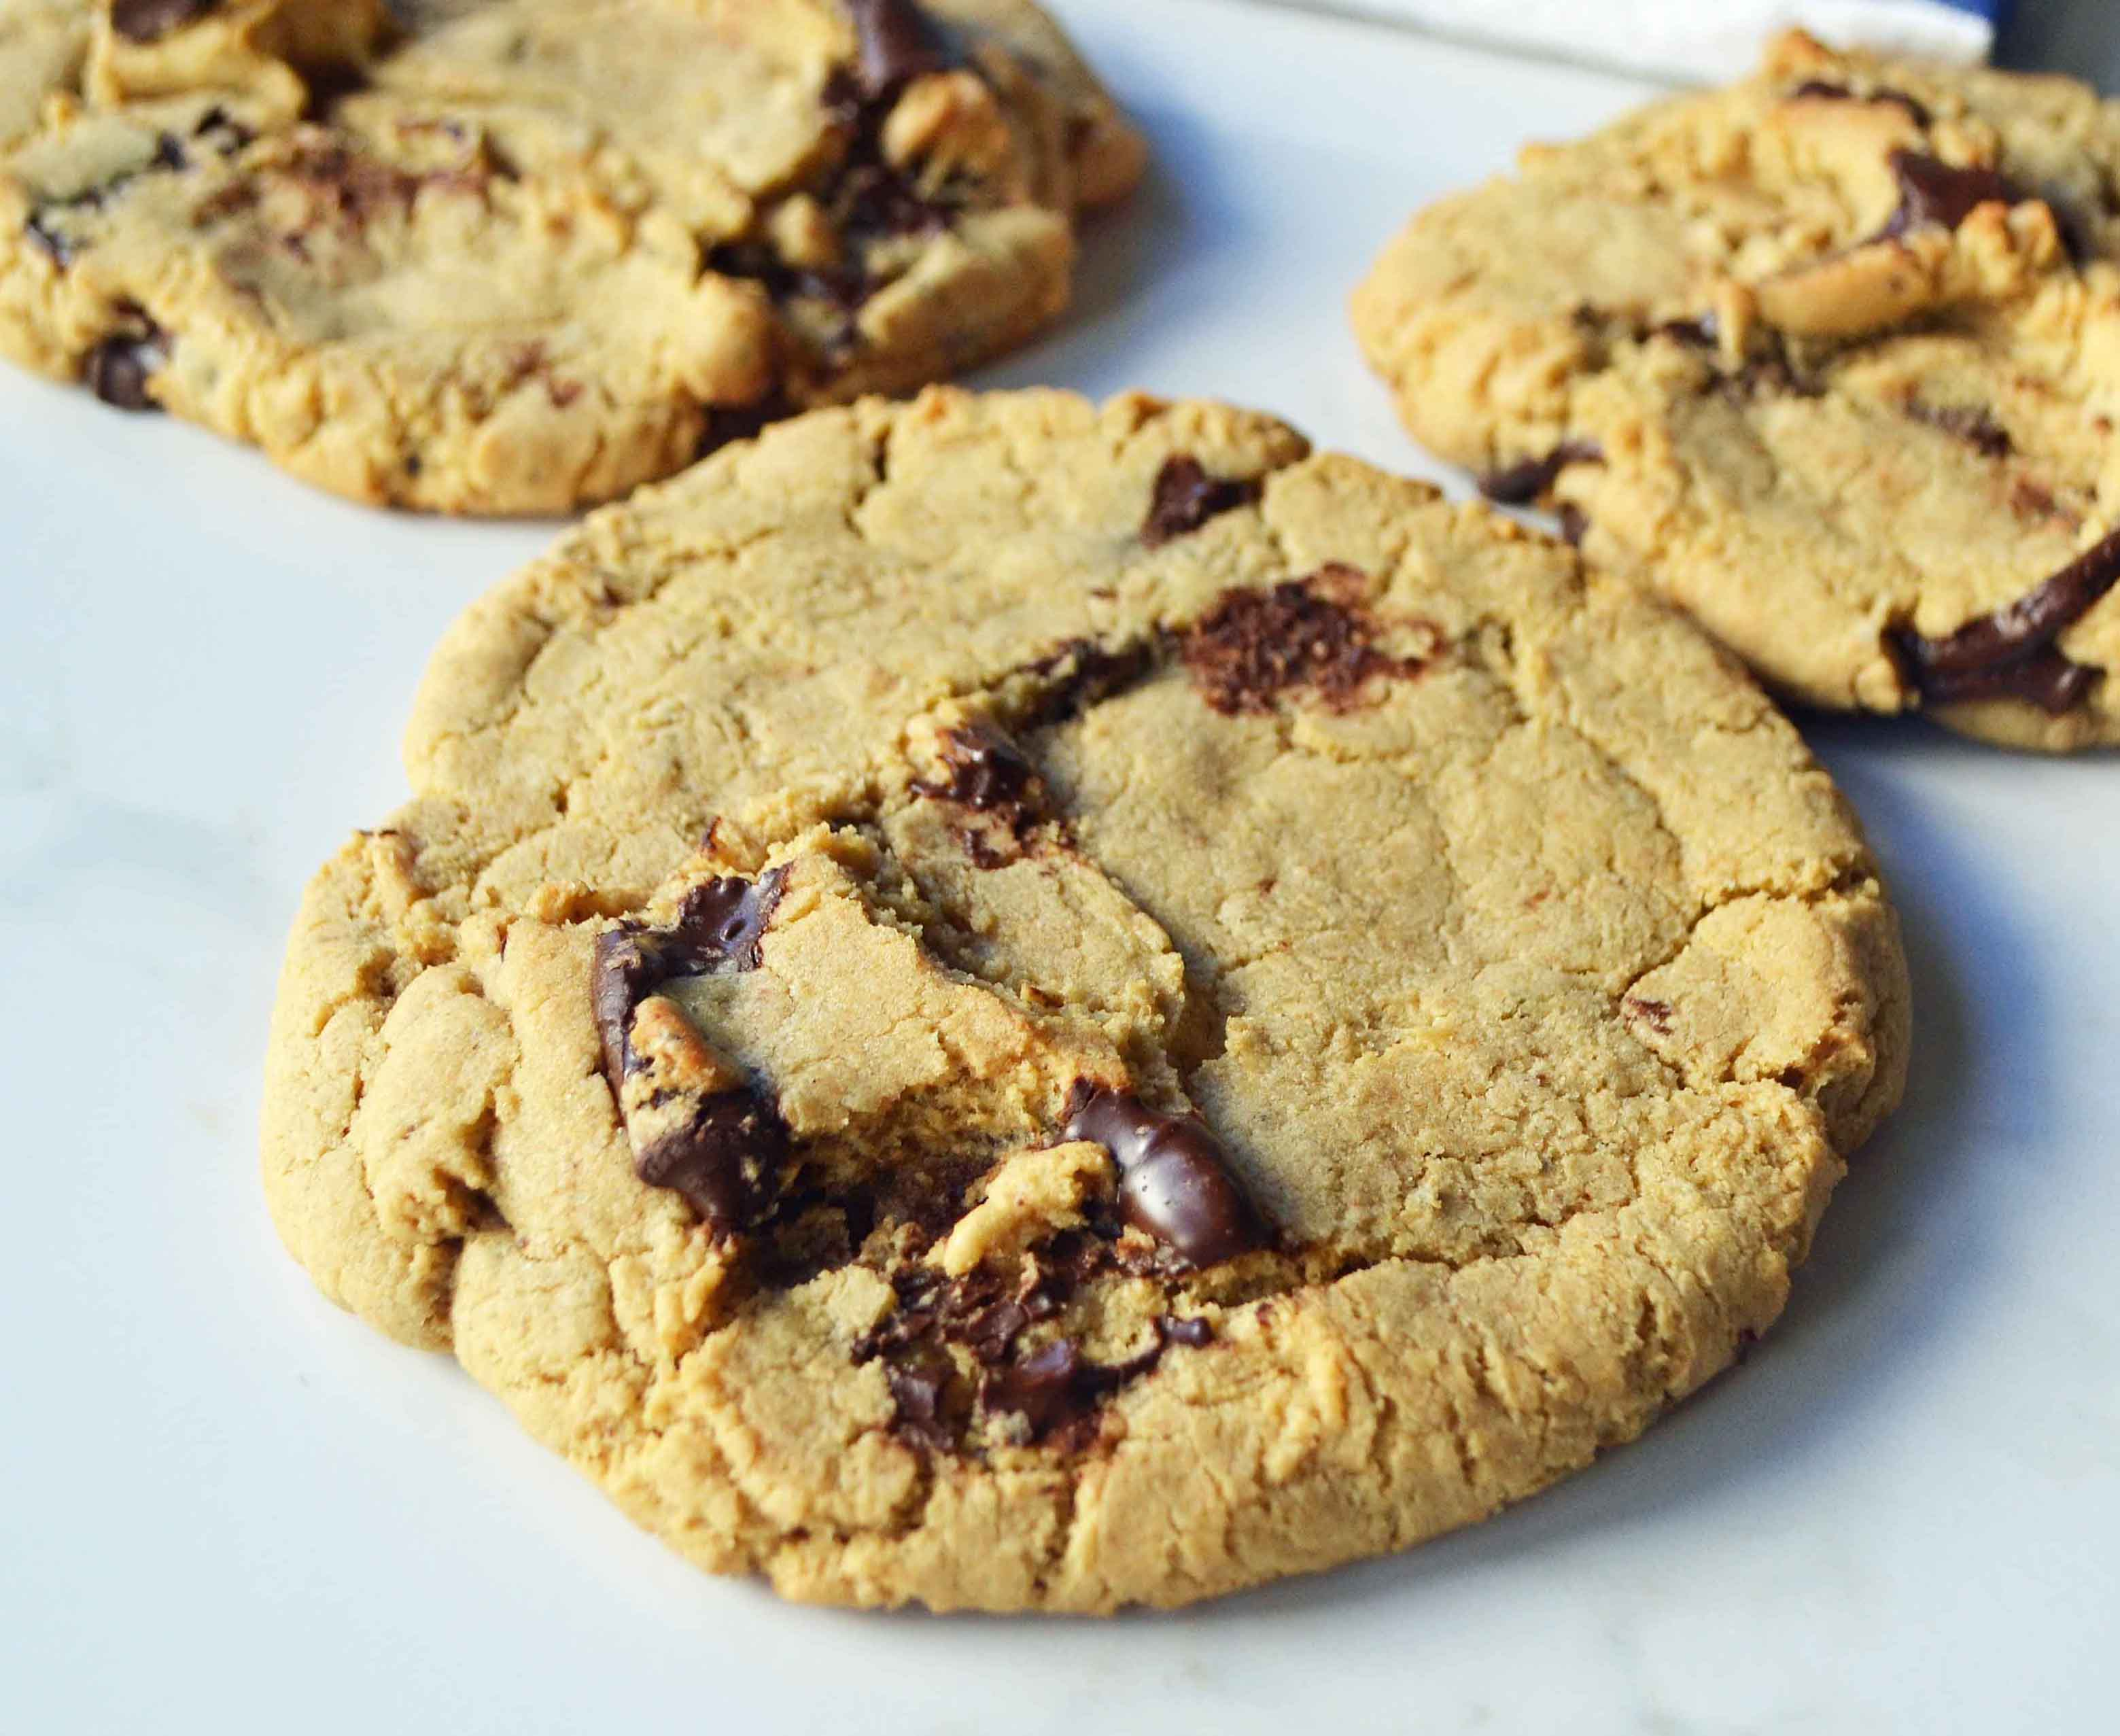 Lenny and Larry's Protein Cookie Copycat by Modern Honey l www.modernhoney.com l 16 grams of protein per cookie